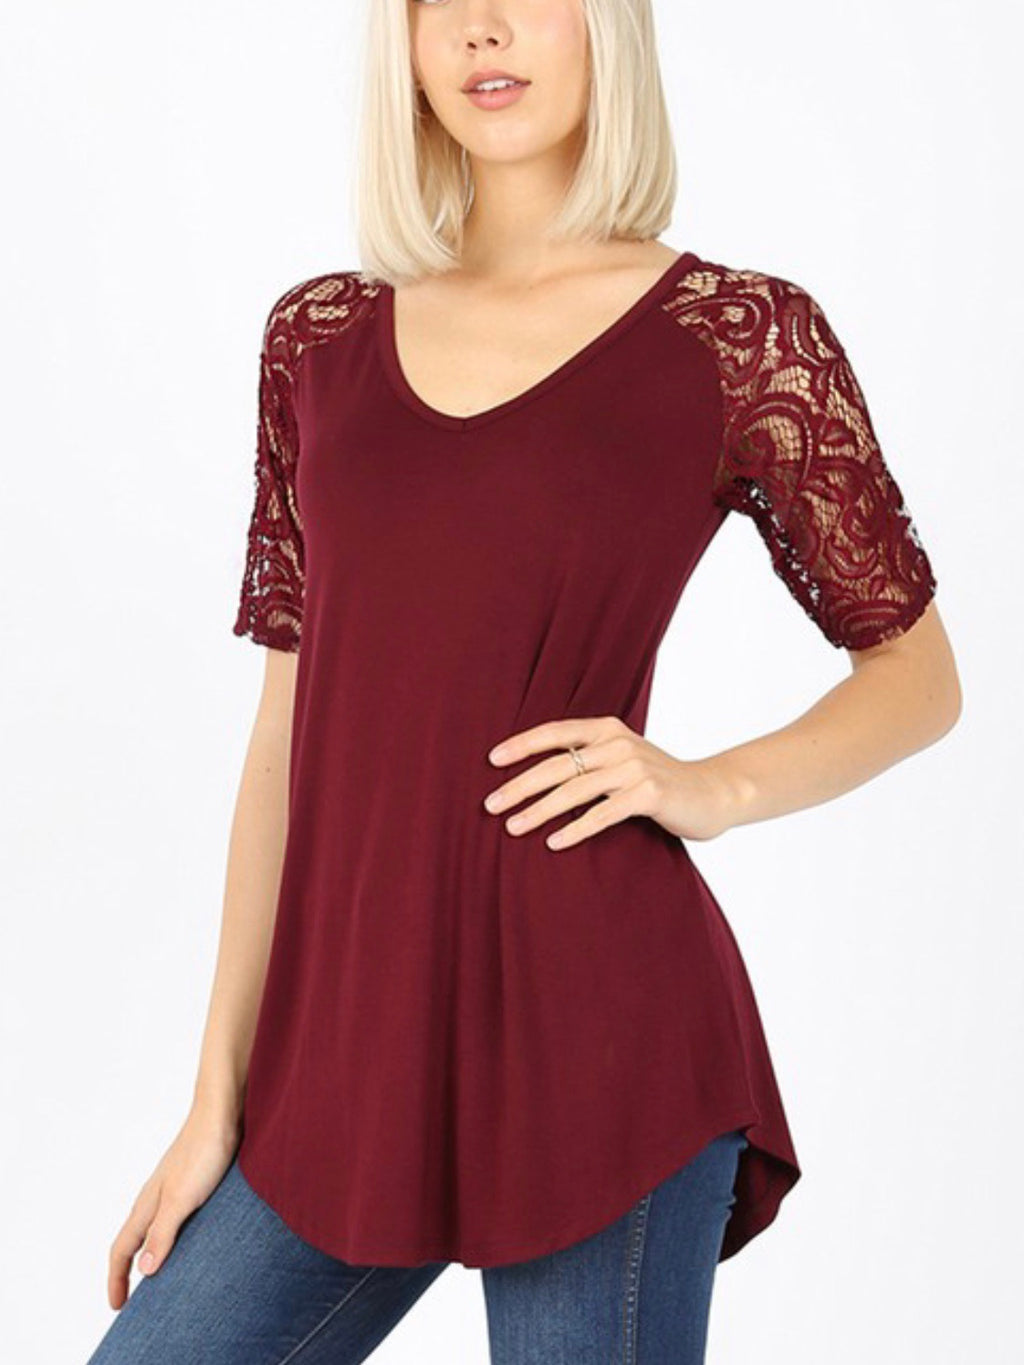 Luxe Lacey Short Sleeve Vneck Top